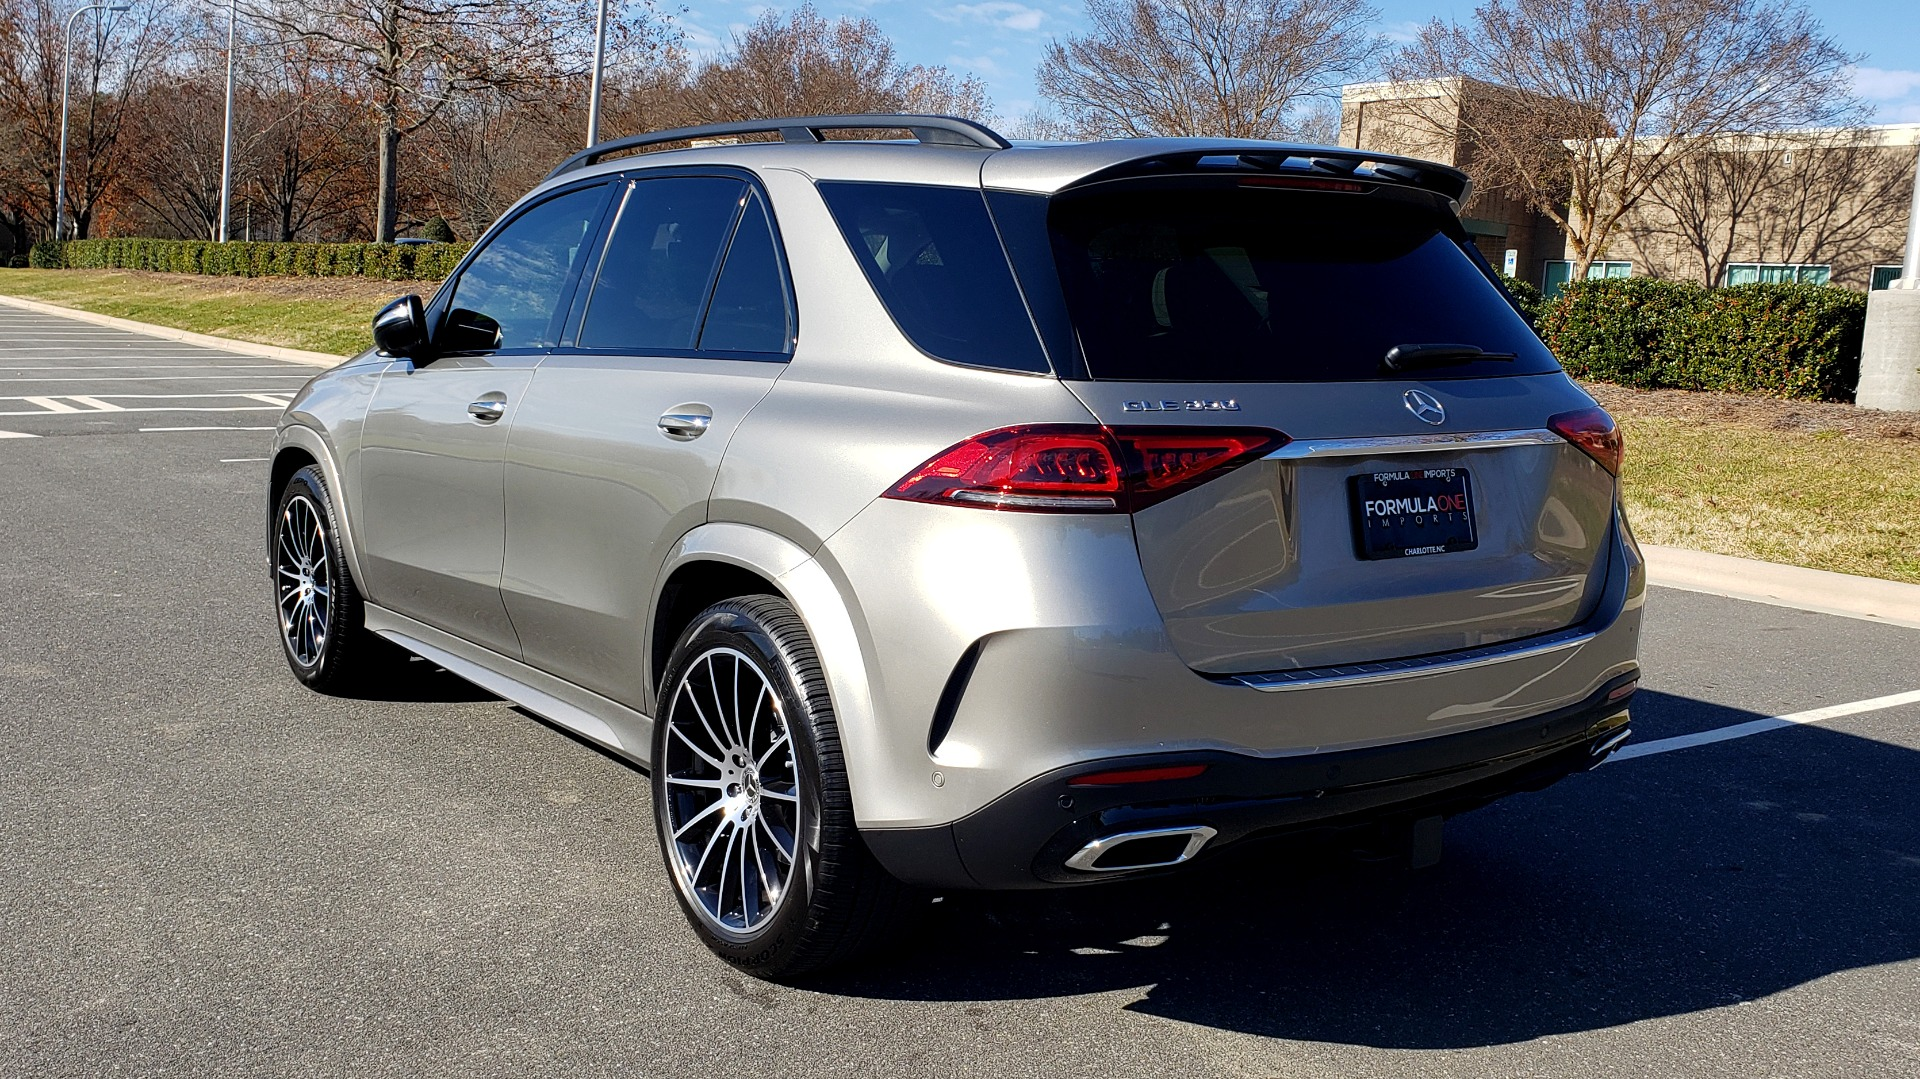 Used 2020 Mercedes-Benz GLE 350 PREMIUM / NAV / PARK ASST / NIGHT PKG / AMG LINE EXT / REARVIEW for sale Sold at Formula Imports in Charlotte NC 28227 5